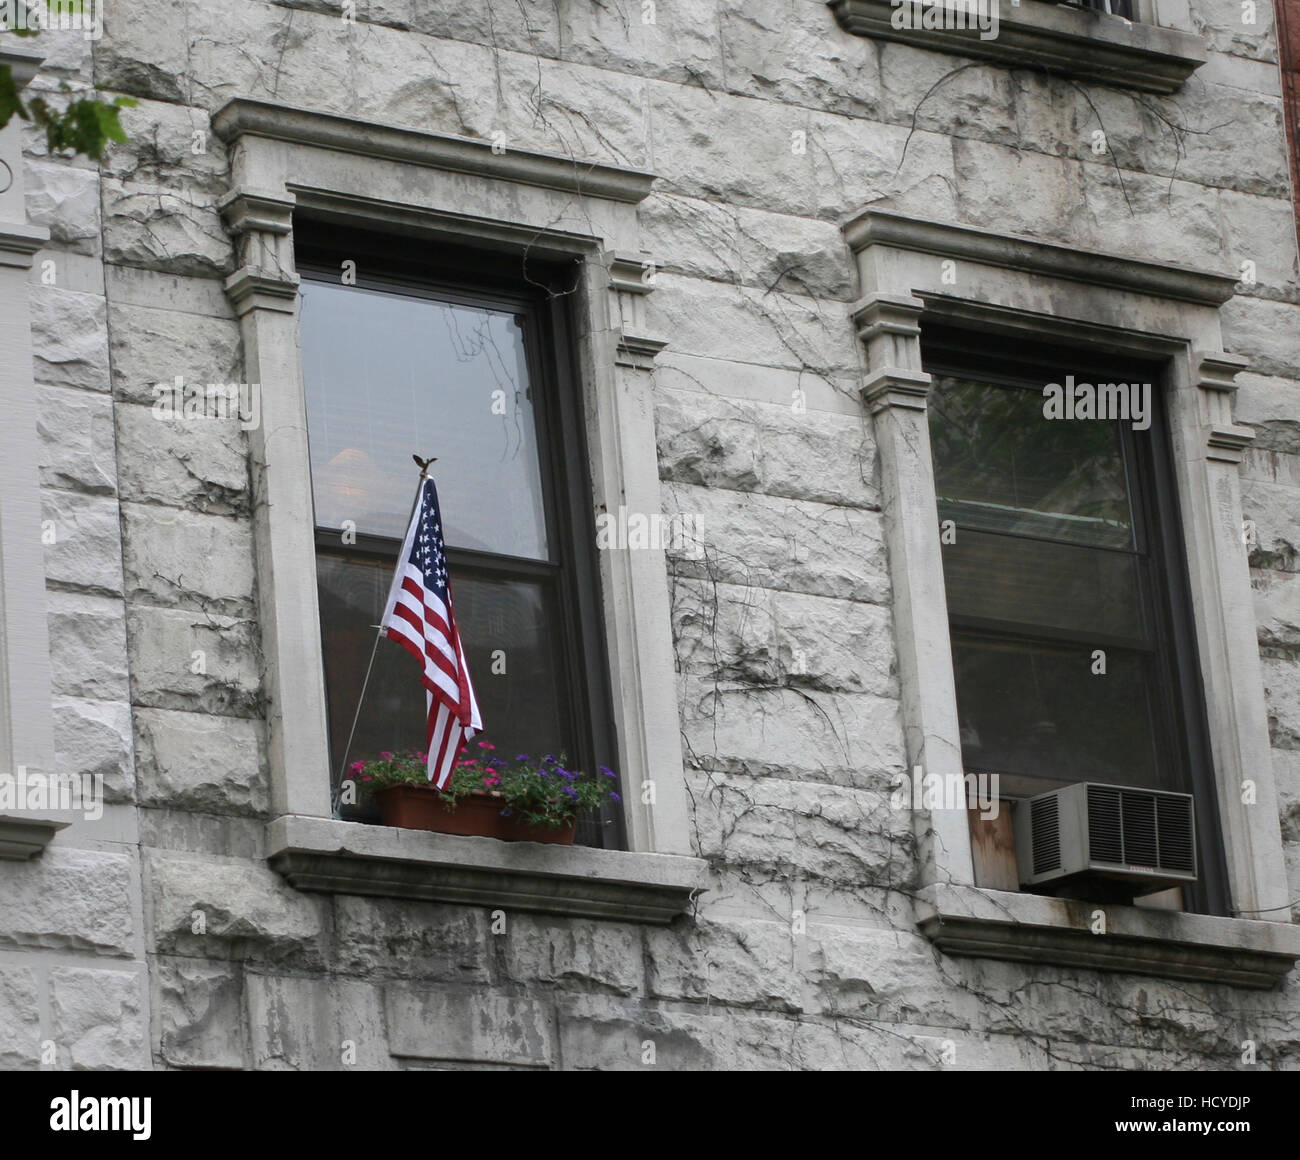 NEW YORK American patriotism with a flag in the window 2008 - Stock Image